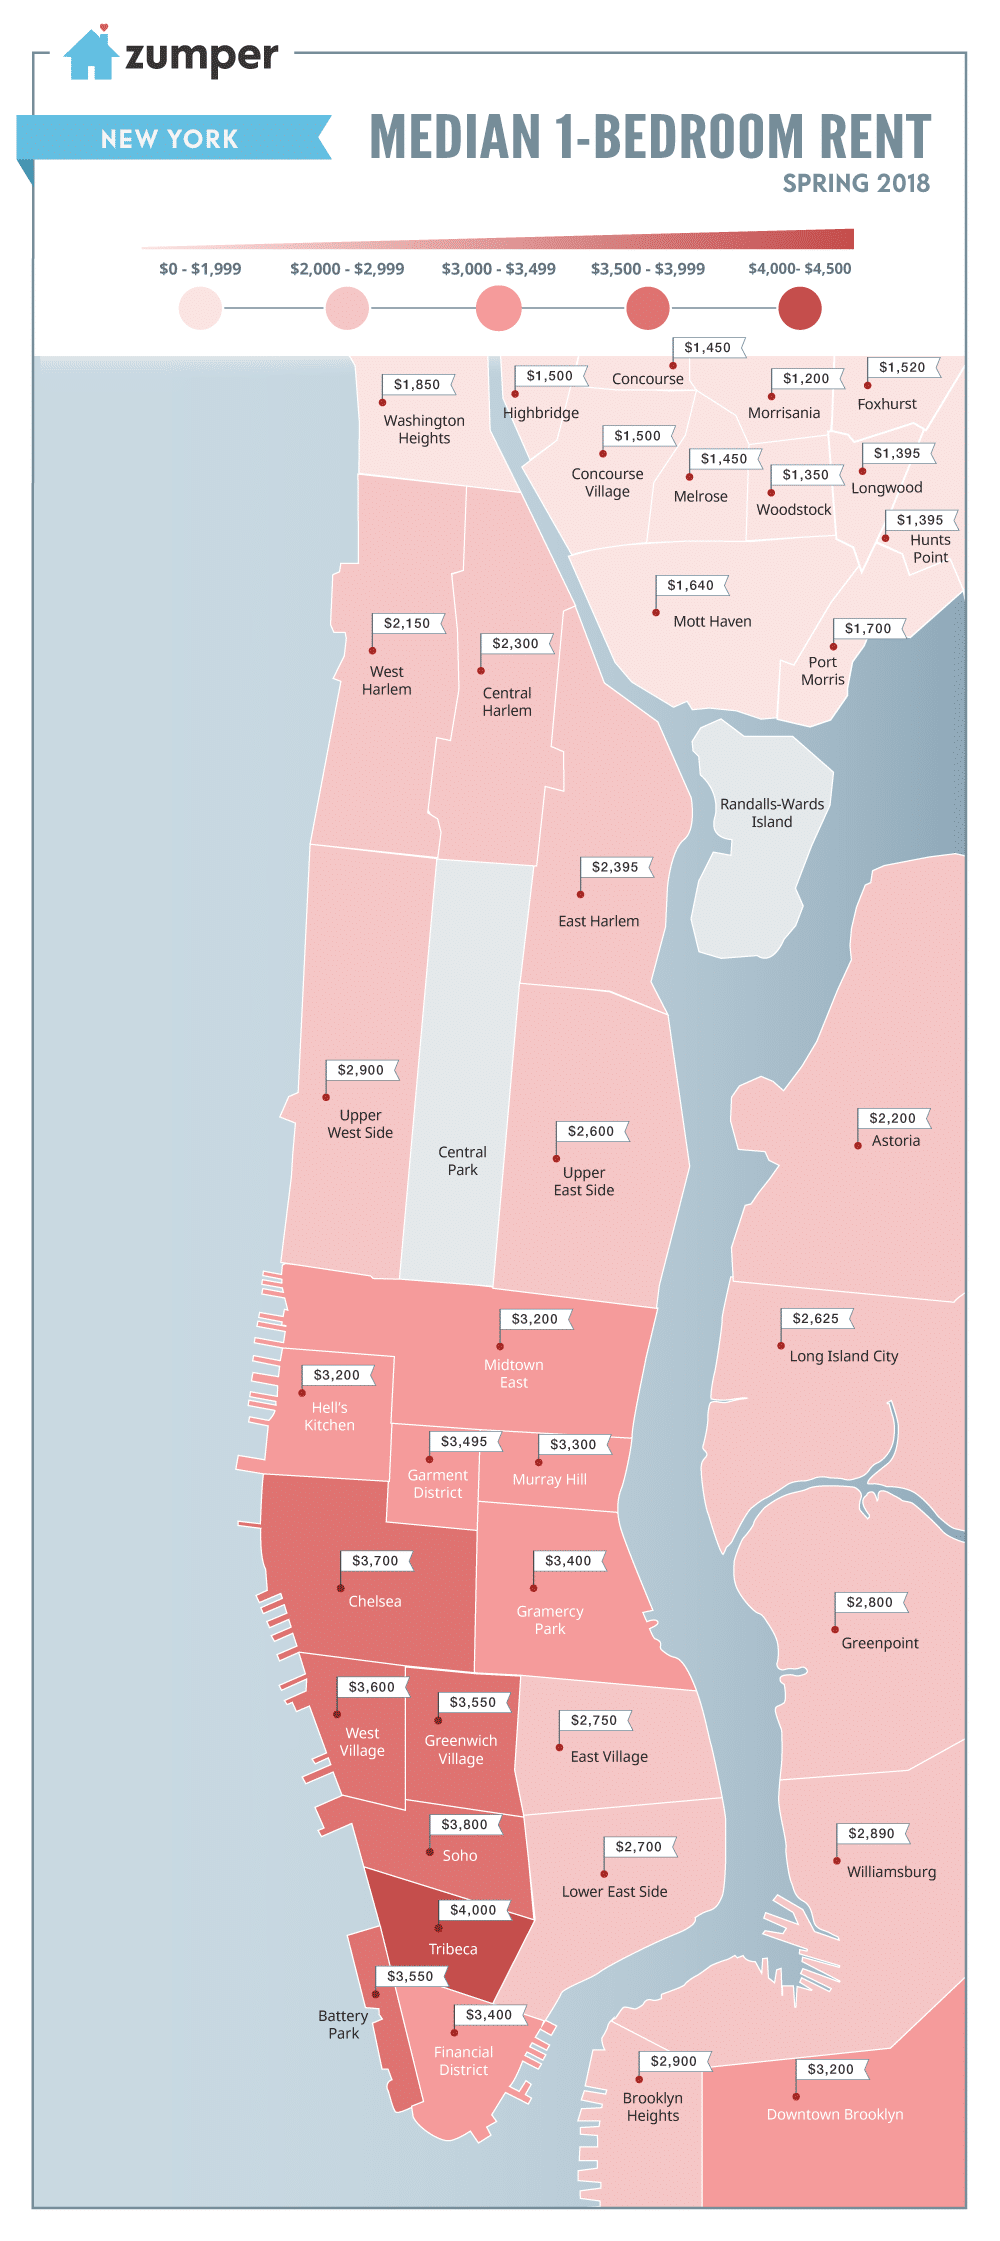 Check Out Current New York City One Bedroom Rent Prices Broken Down By Neighborhood On